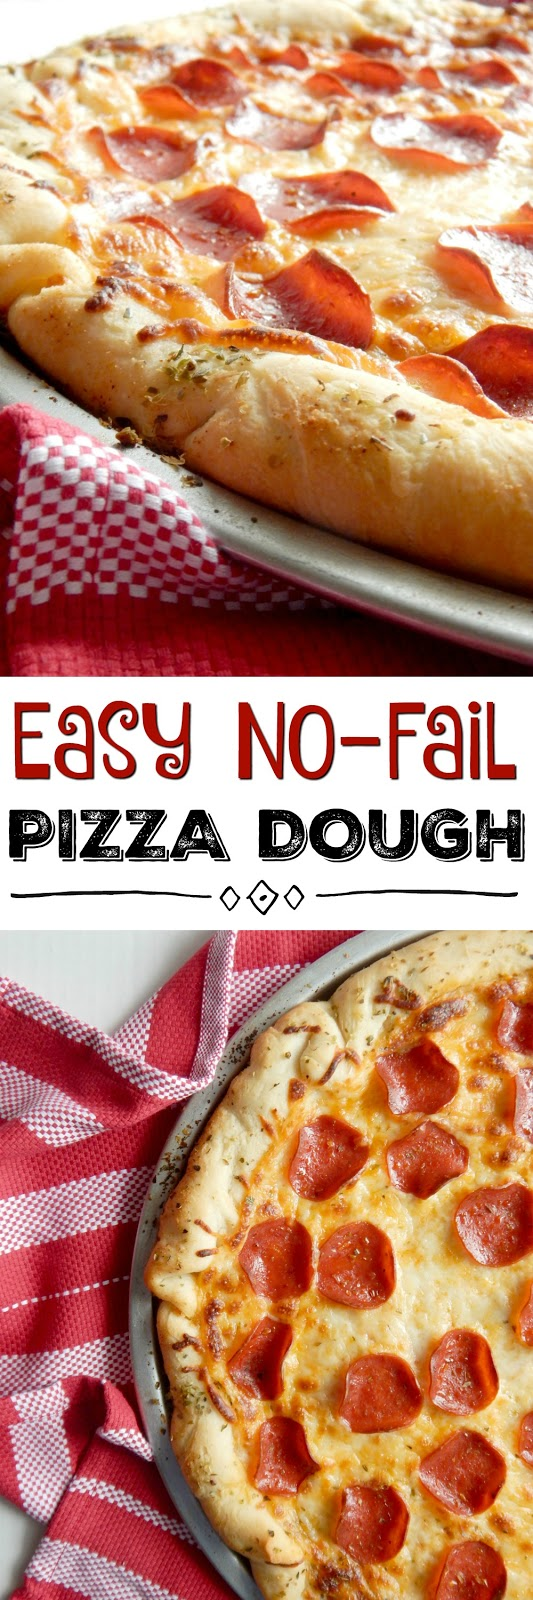 Easy No-Fail Pizza Dough...this simple pizza dough can rise for as little as 2 hours or sit on your counter all day long.  It's make a soft and fluffy crust that kids love! (sweetandsavoryfood.com)